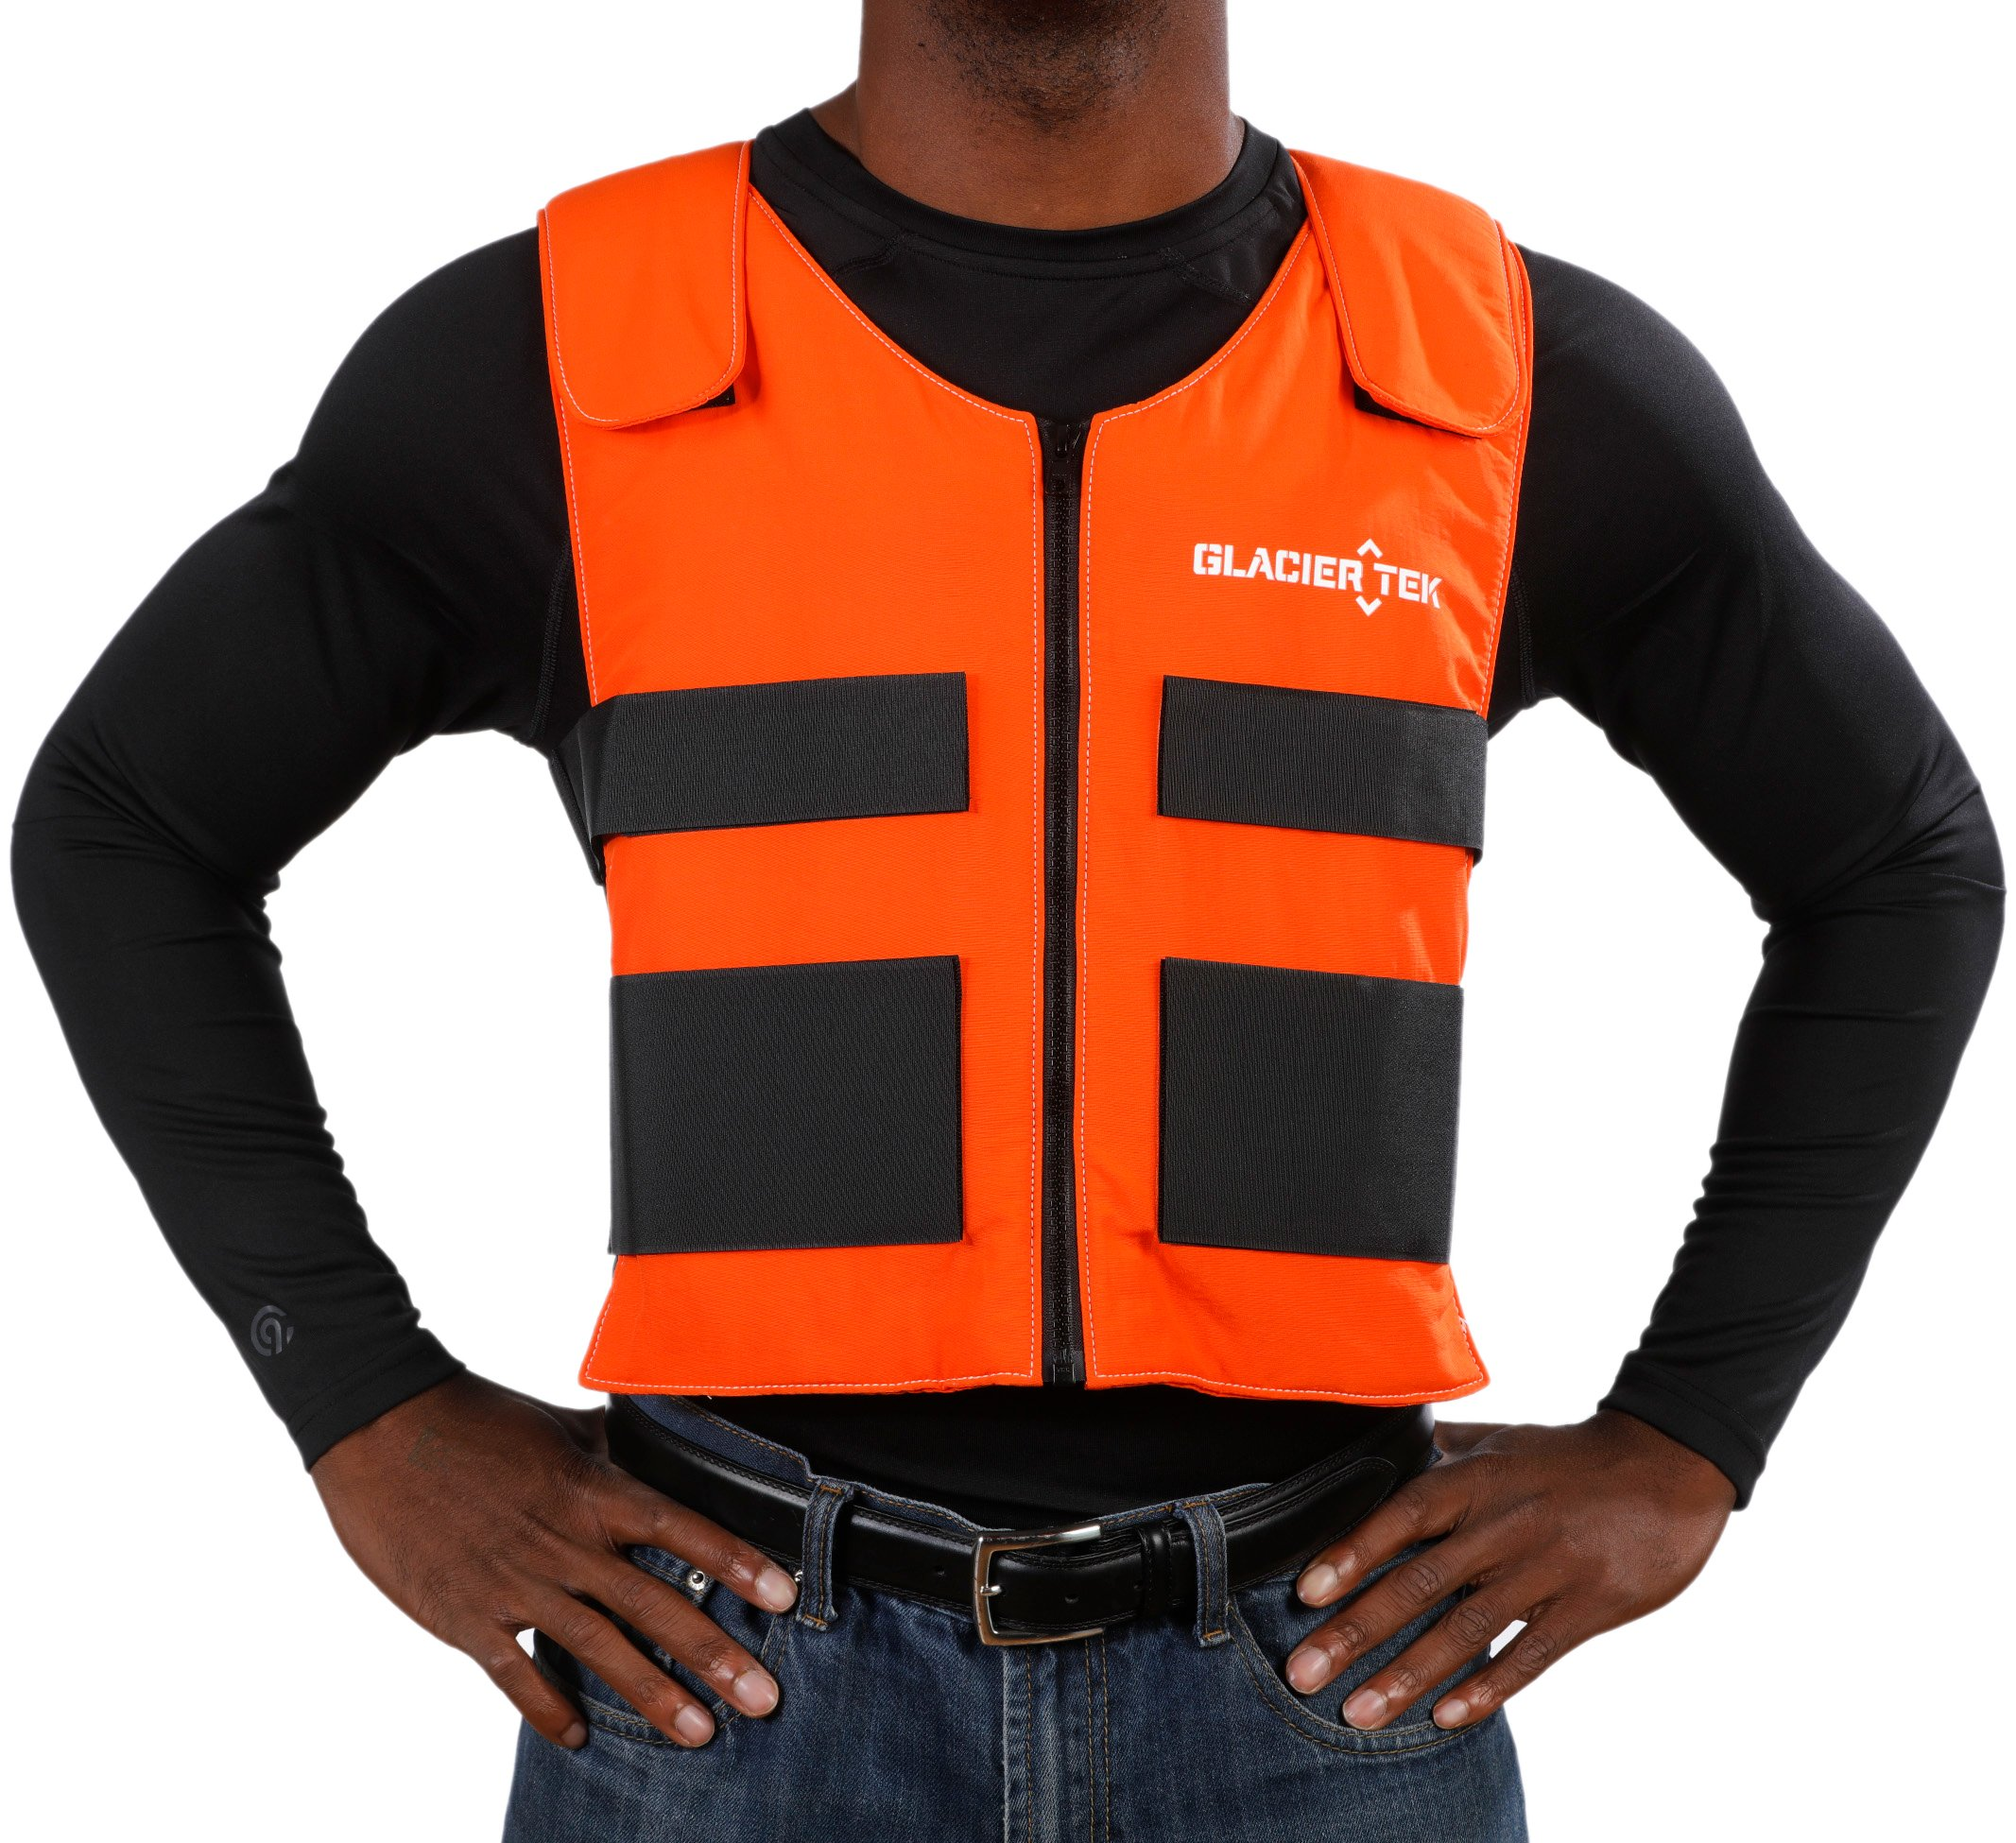 Glacier Tek Sports Cool Vest with Set of 8 Nontoxic Cooling Packs Orange by Glacier Tek (Image #3)